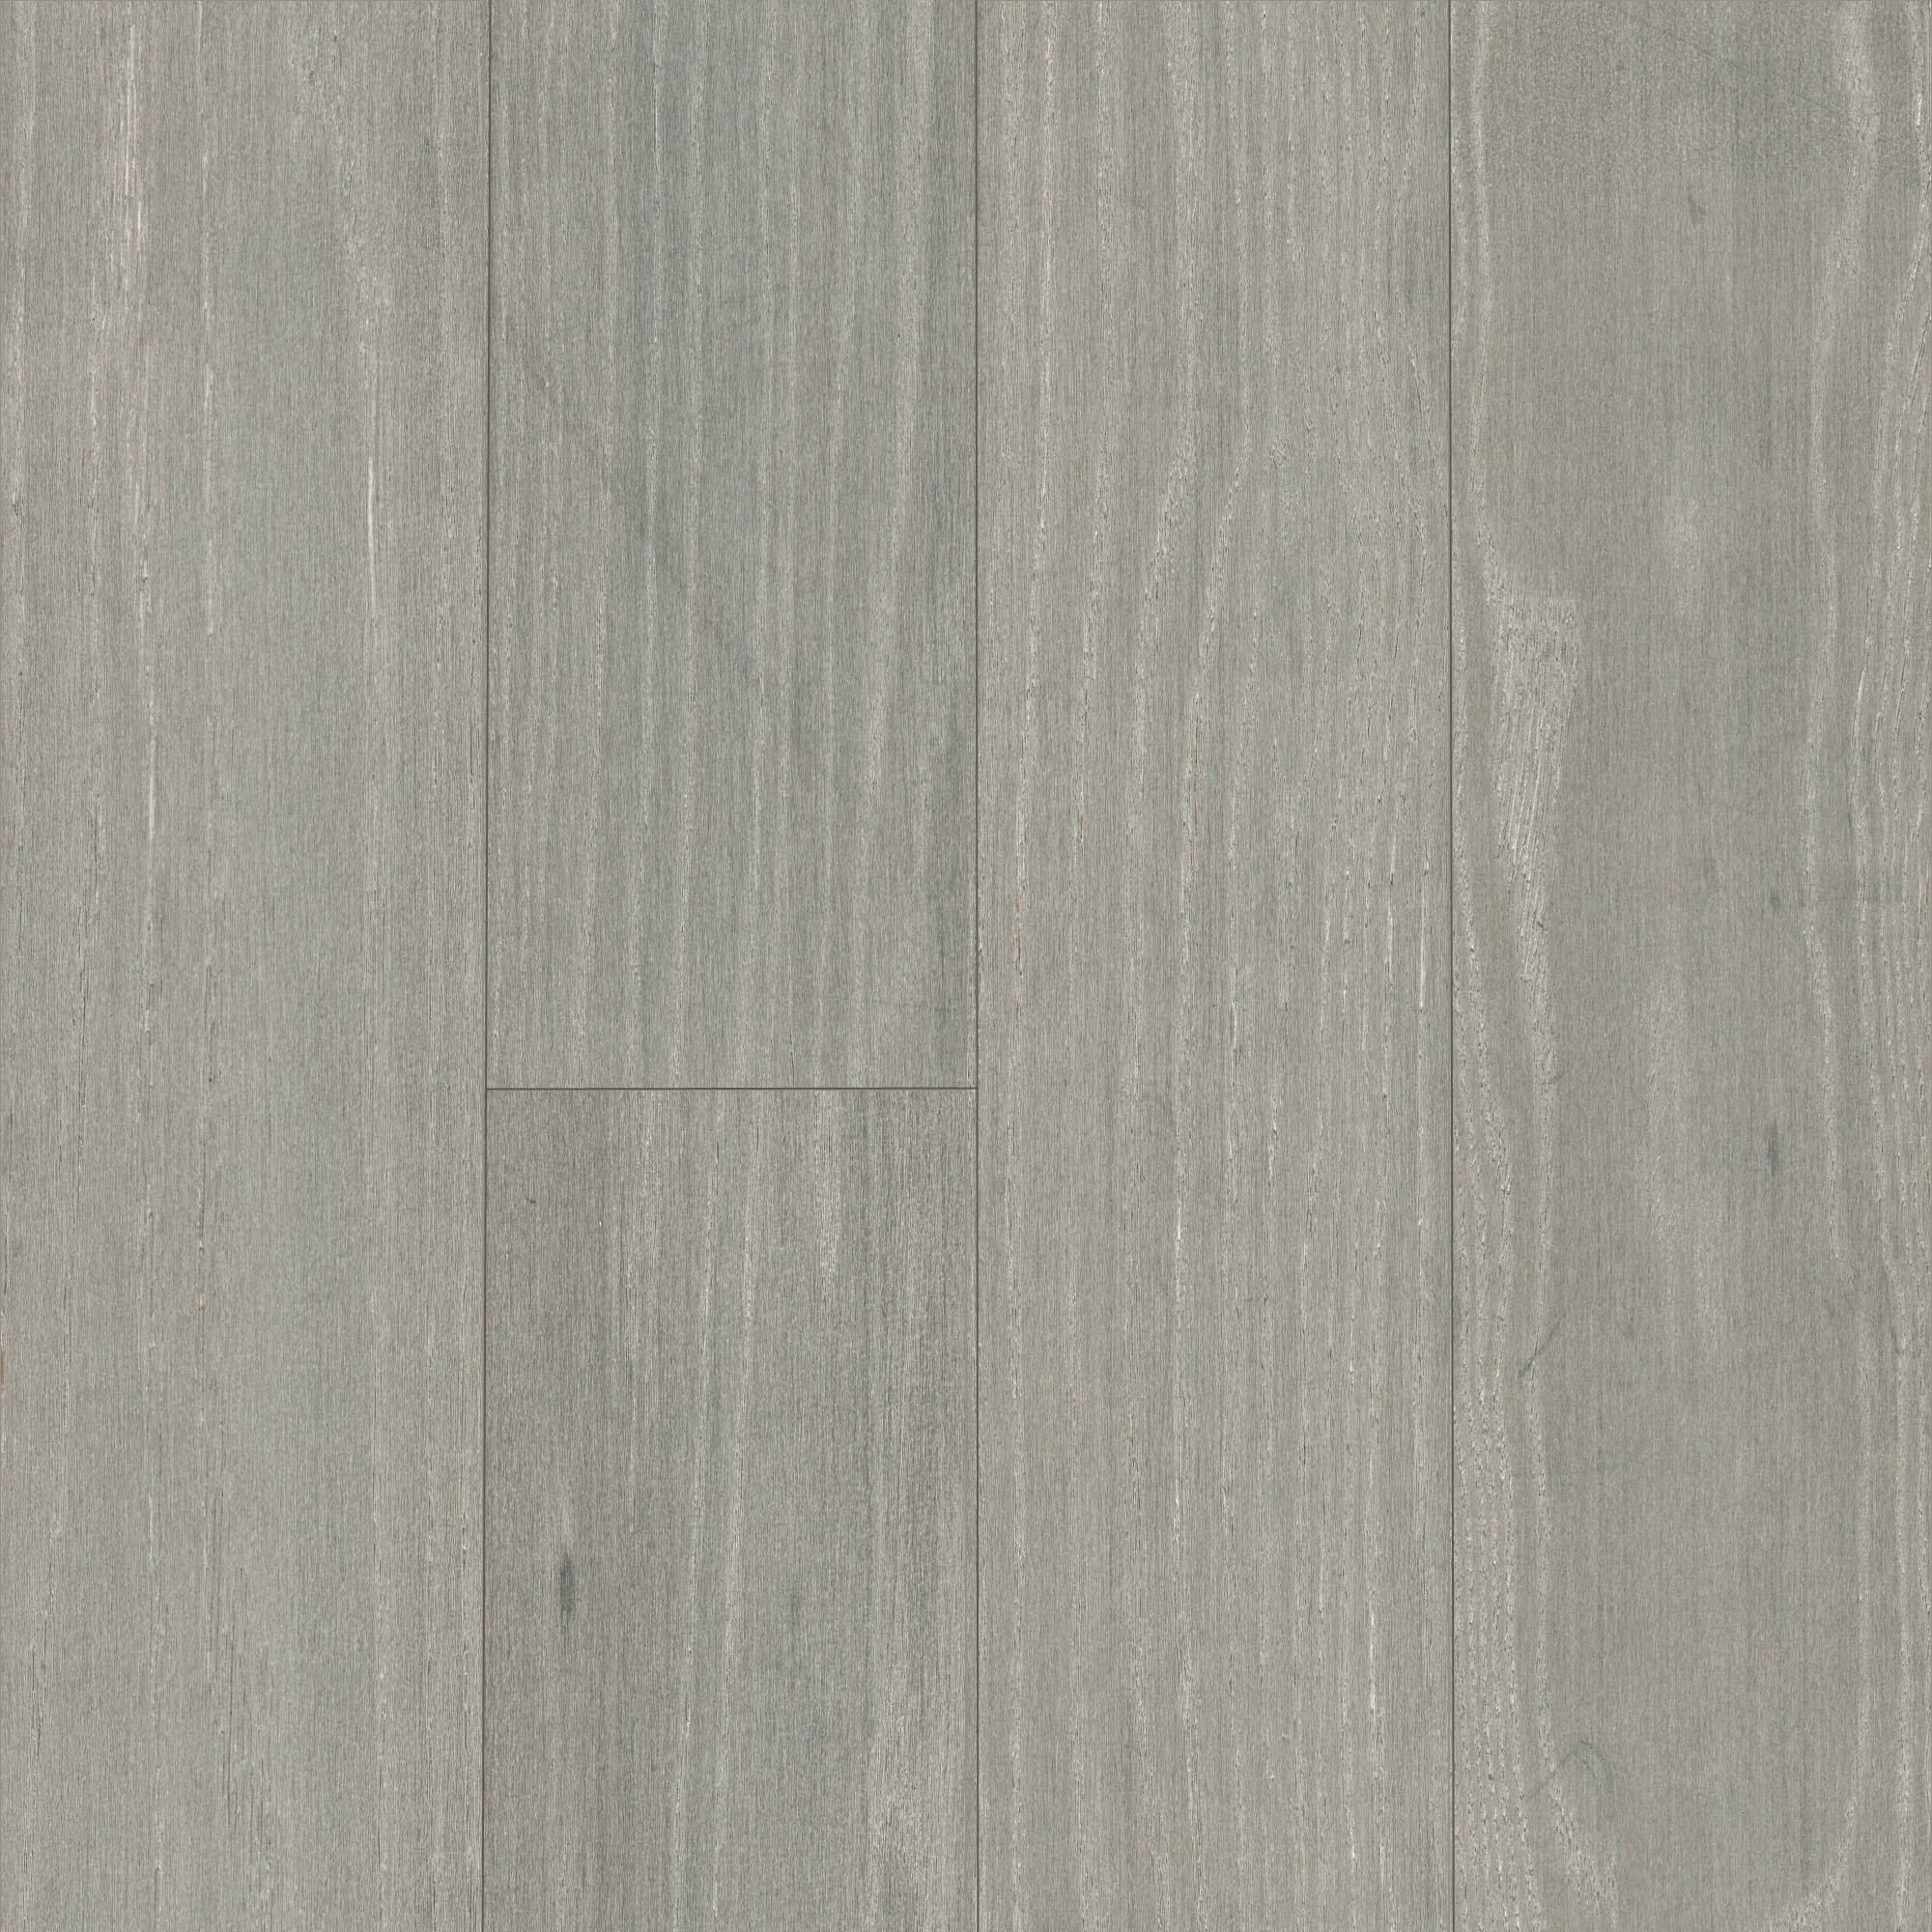 bruce oak saddle hardwood flooring of kingsmill foggy bottom oak 3 wide 3 4 solid hardwood flooring with more views